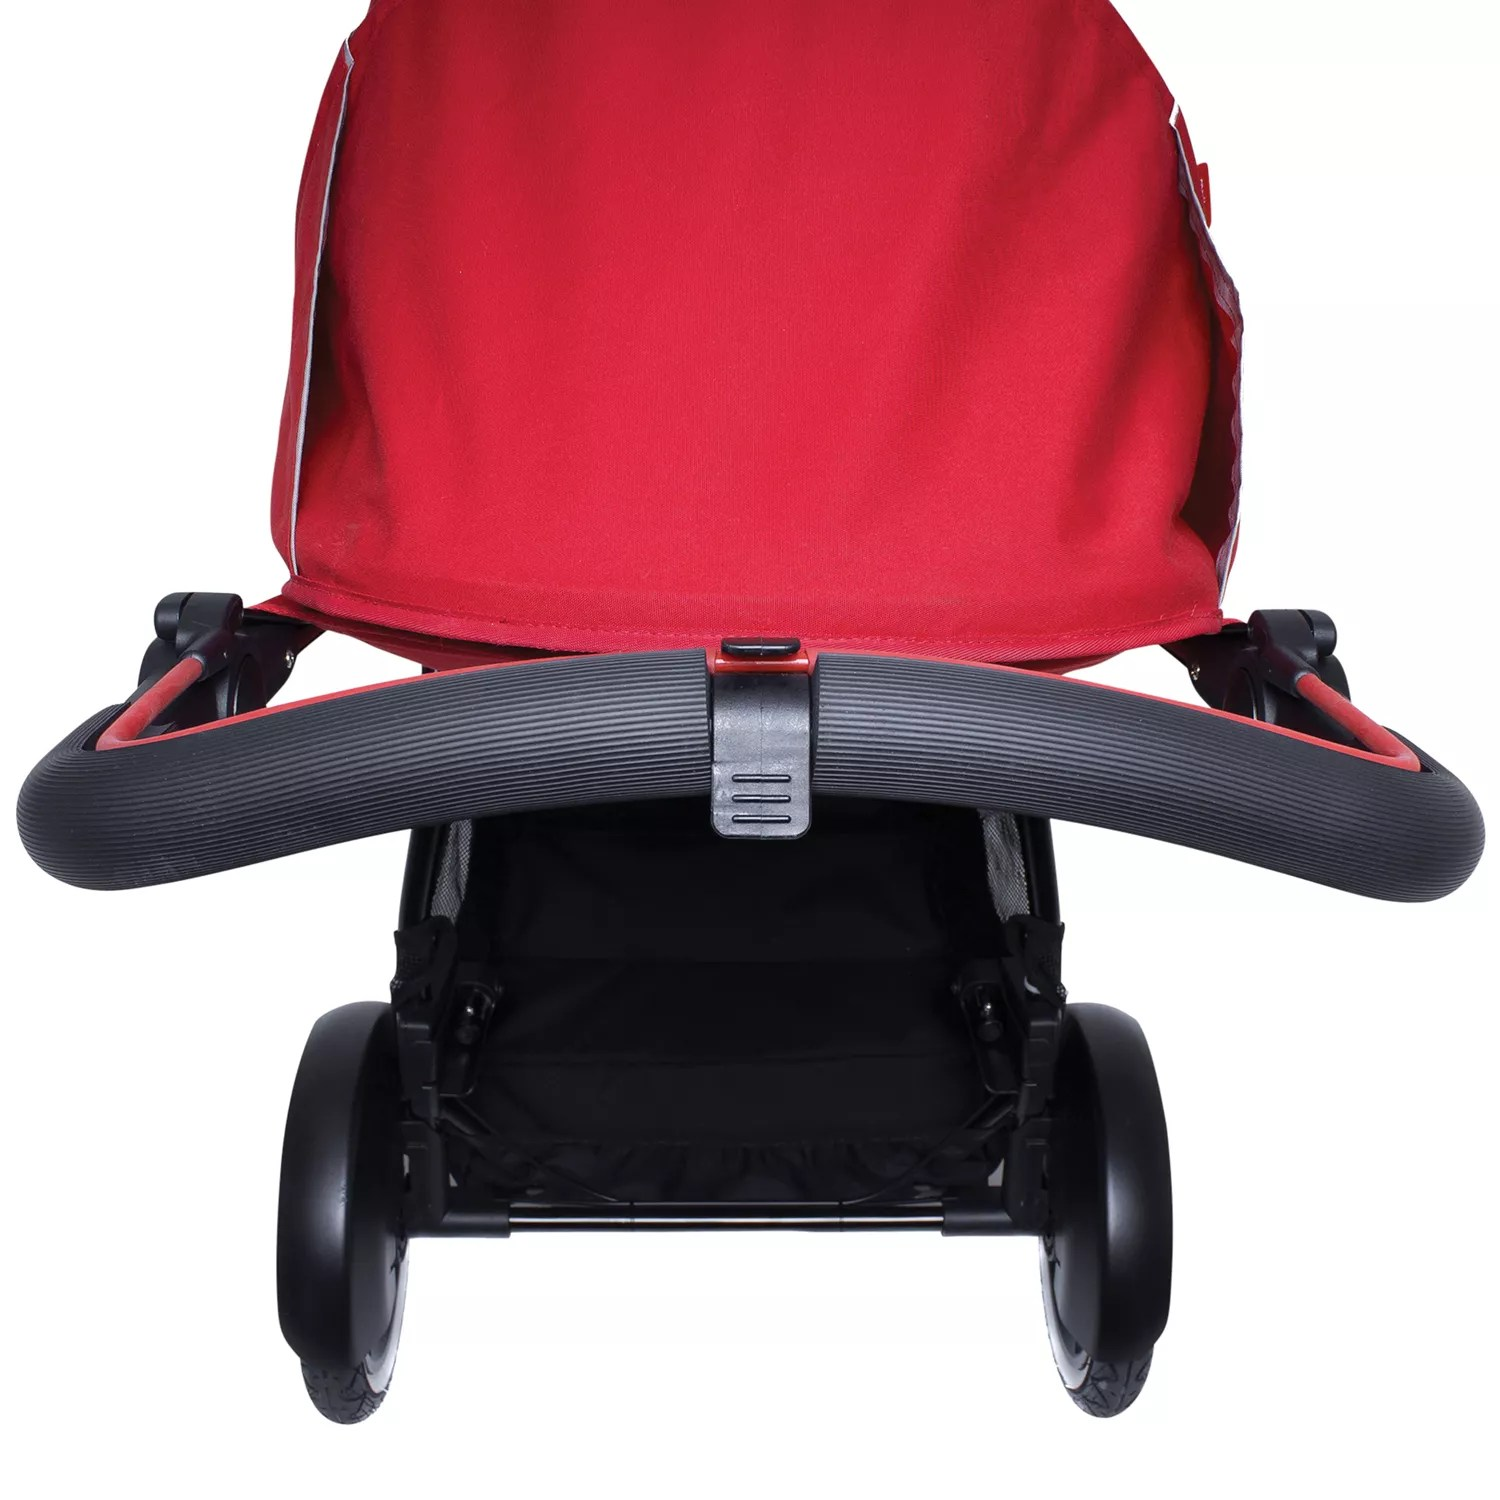 John Lewis Pushchairs From Birth Phil Teds Sport 2 Pushchair Red At John Lewis Partners